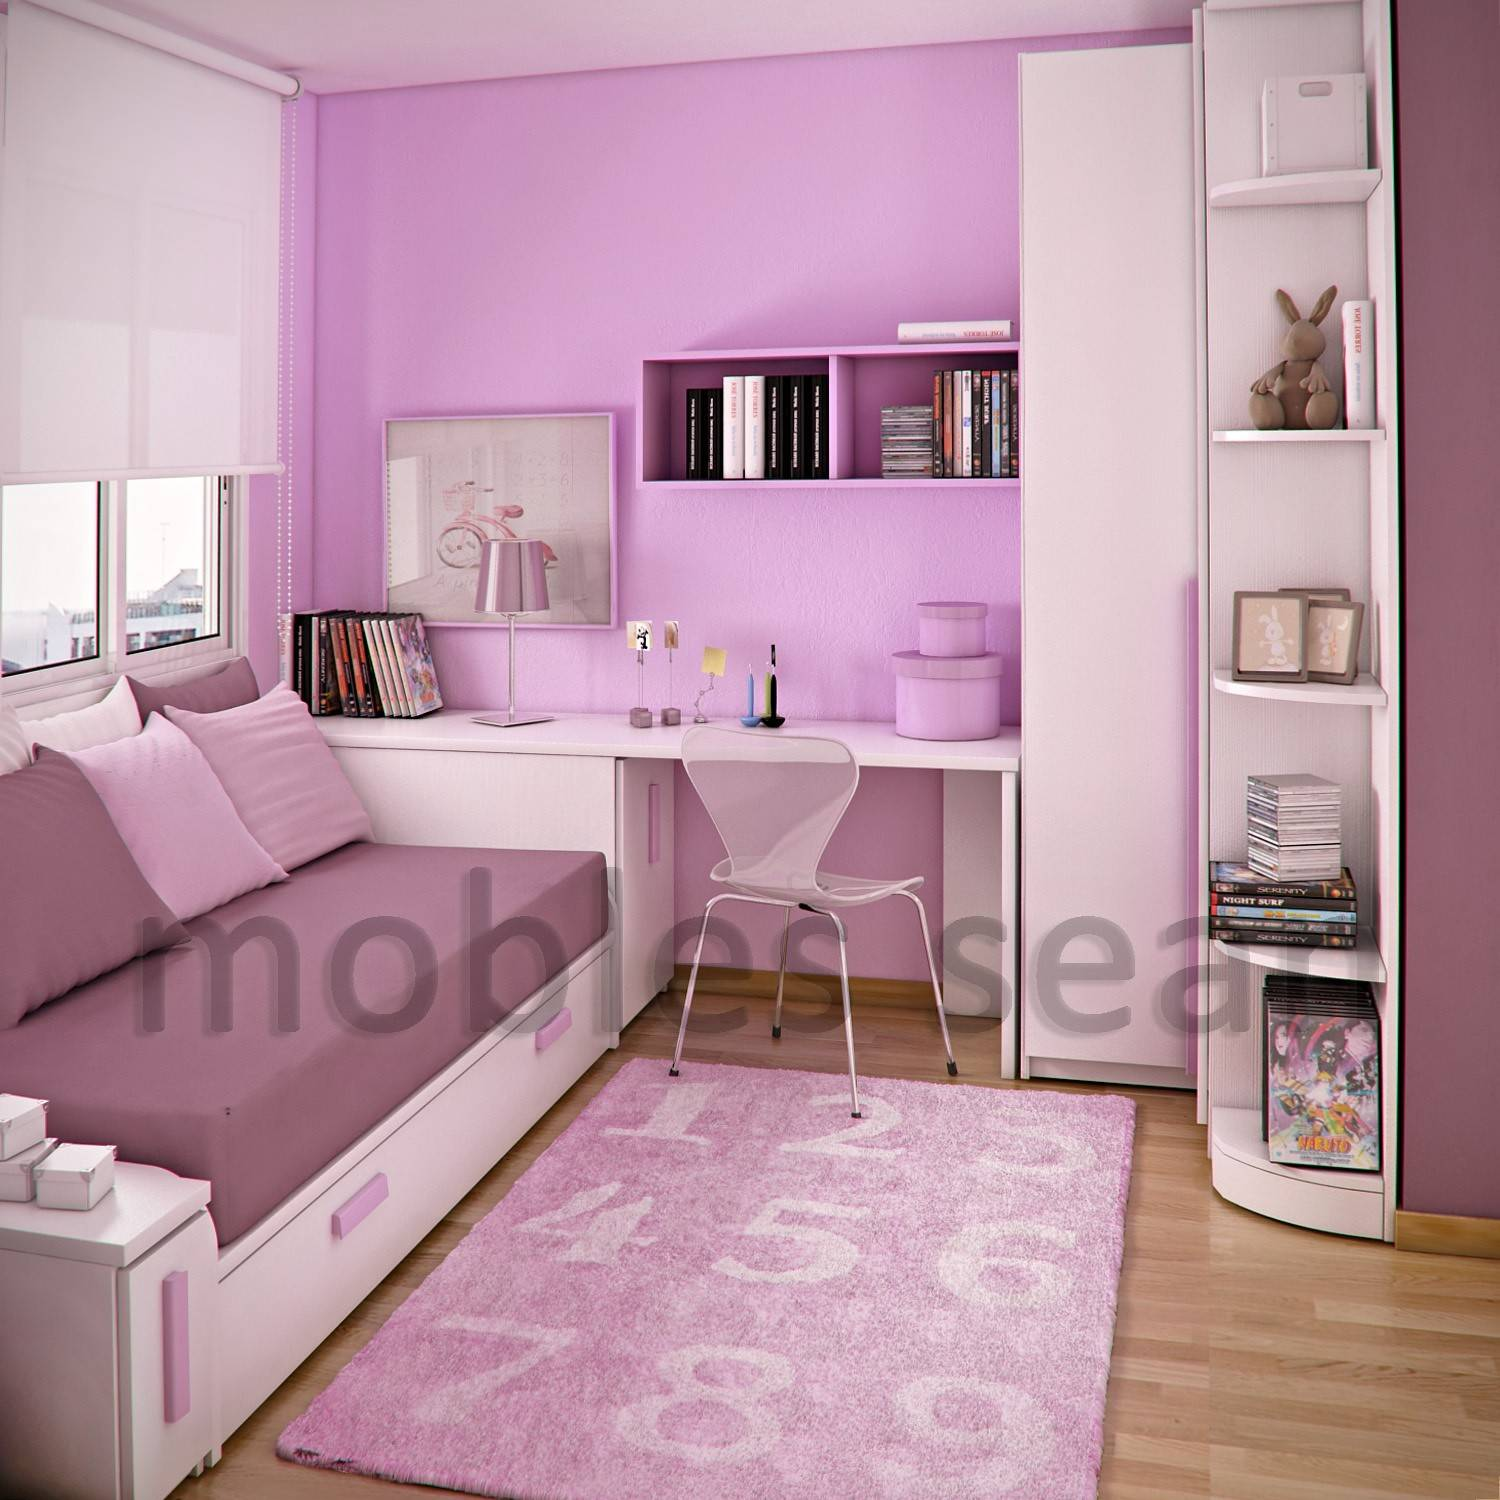 Small Room Design Kids Bedroom Ideas Rooms Cool